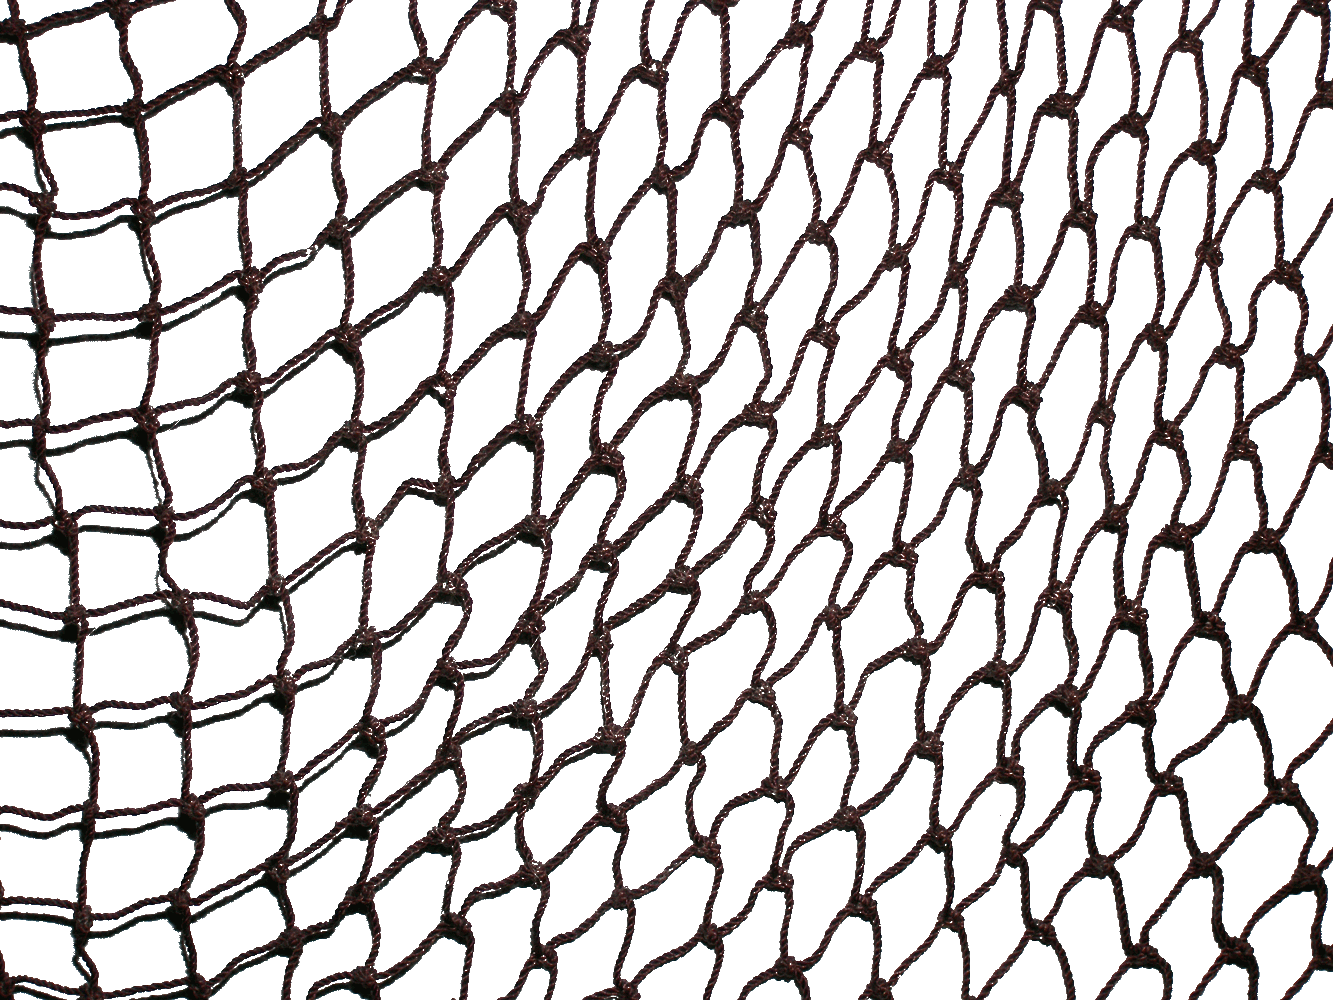 svg free Net fishnet add addon. Drawing rope texture